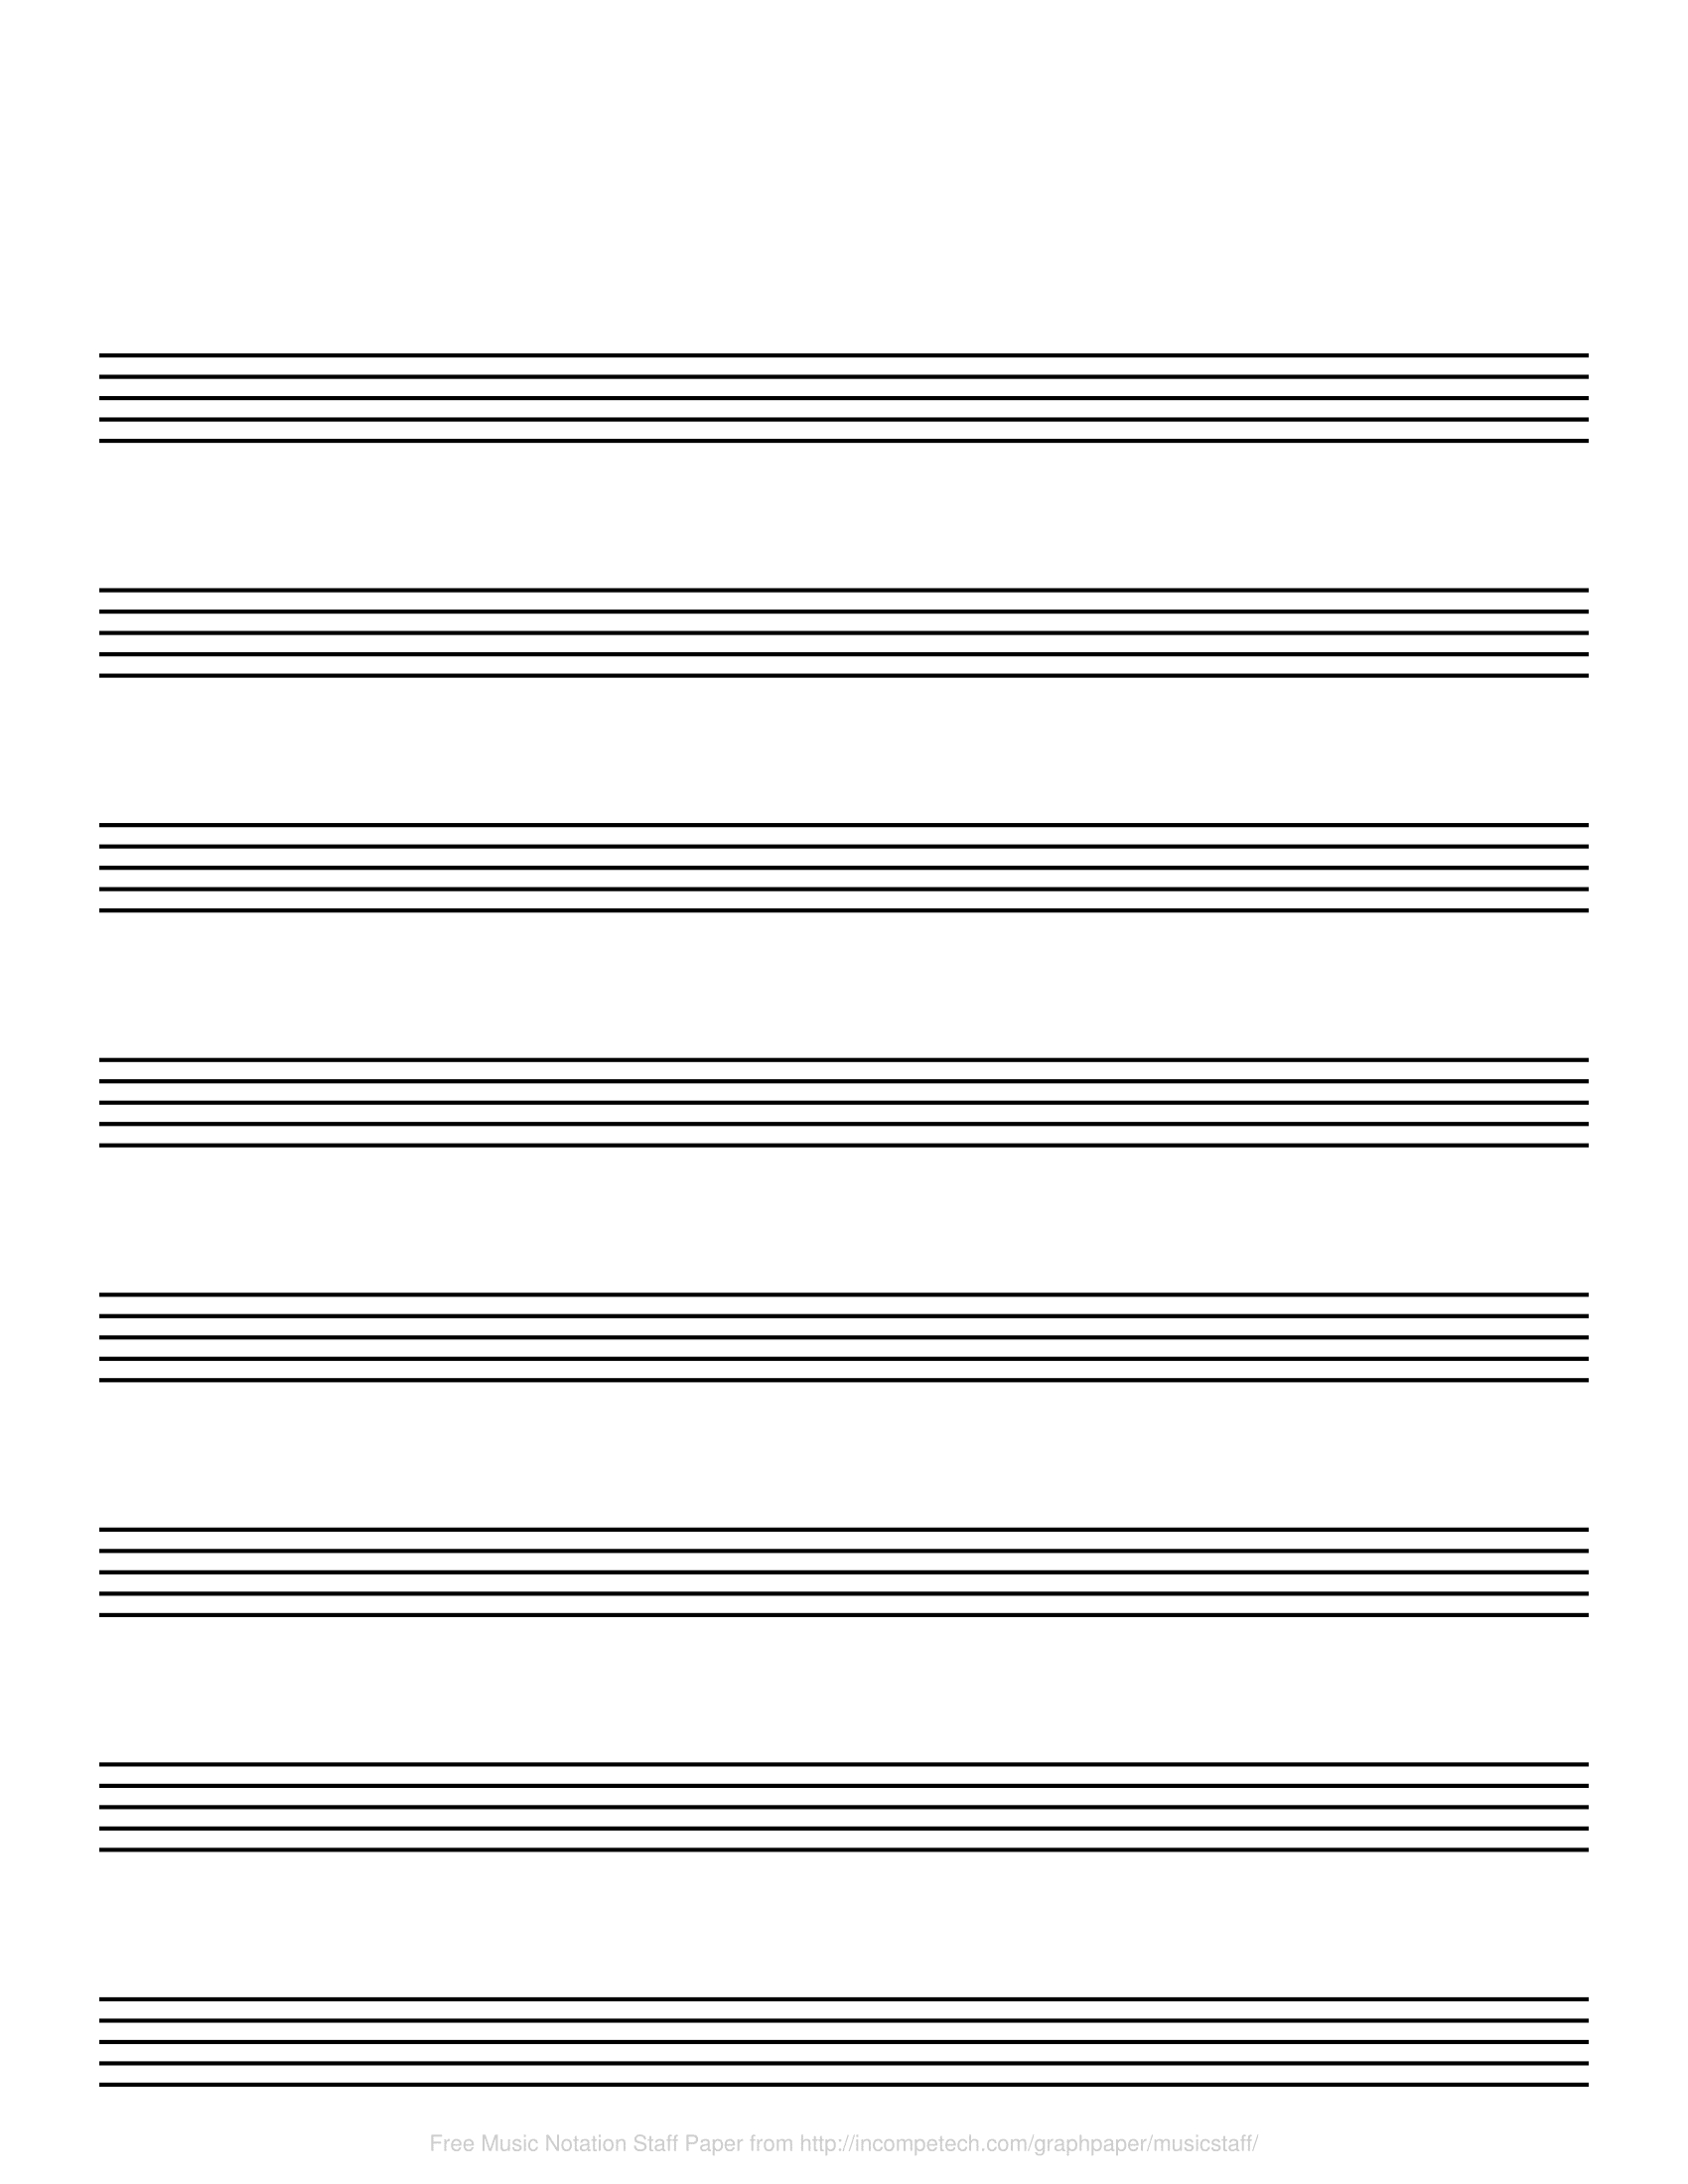 Free Online Graph Paper / Music Notation - Free Printable Blank Music Staff Paper